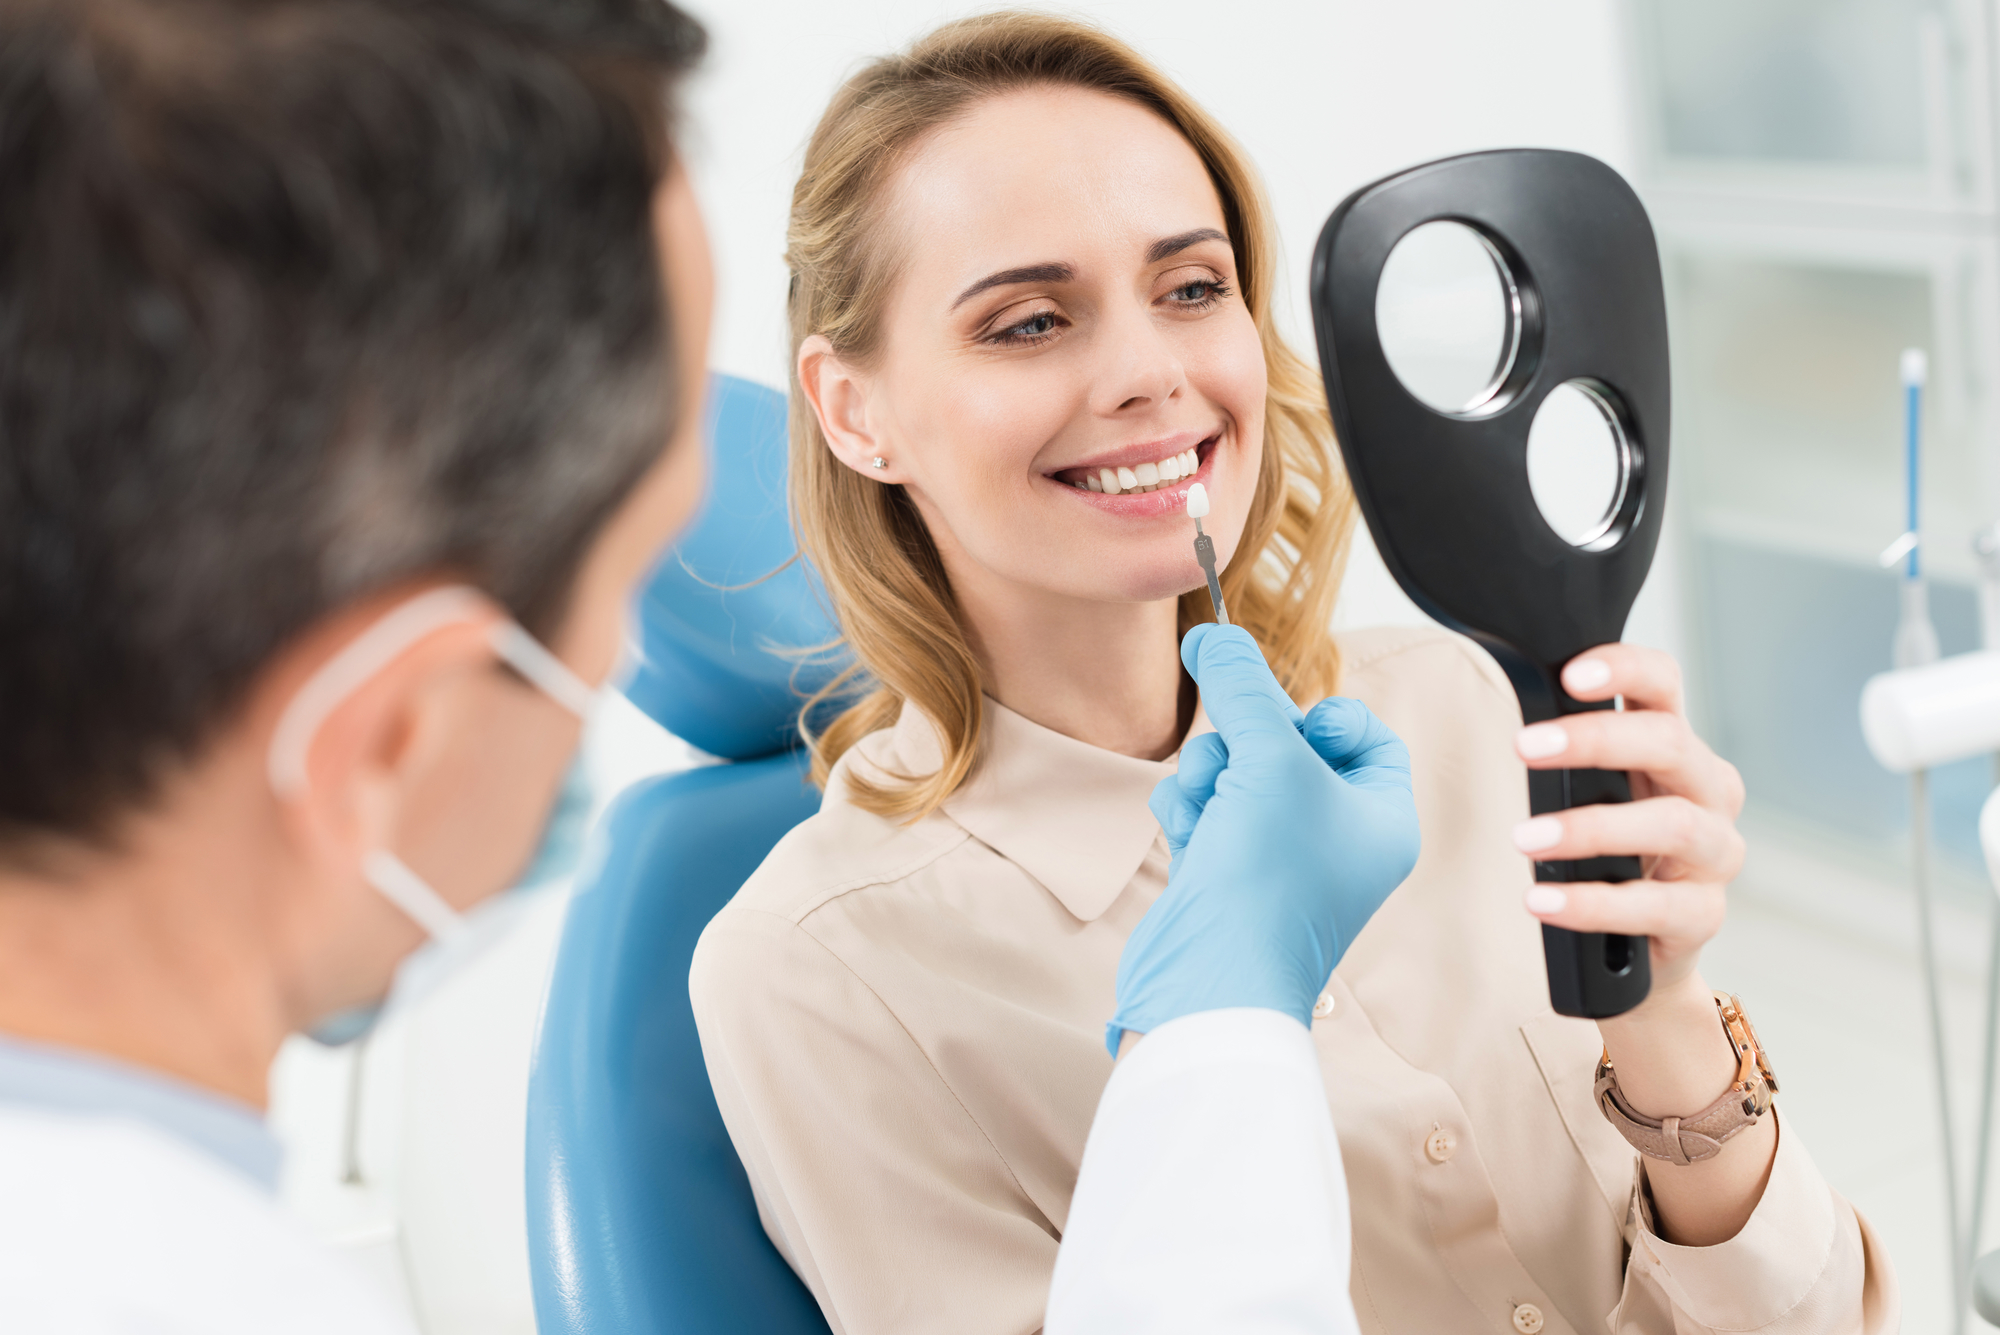 Where can I get dental implants in West Palm Beach?